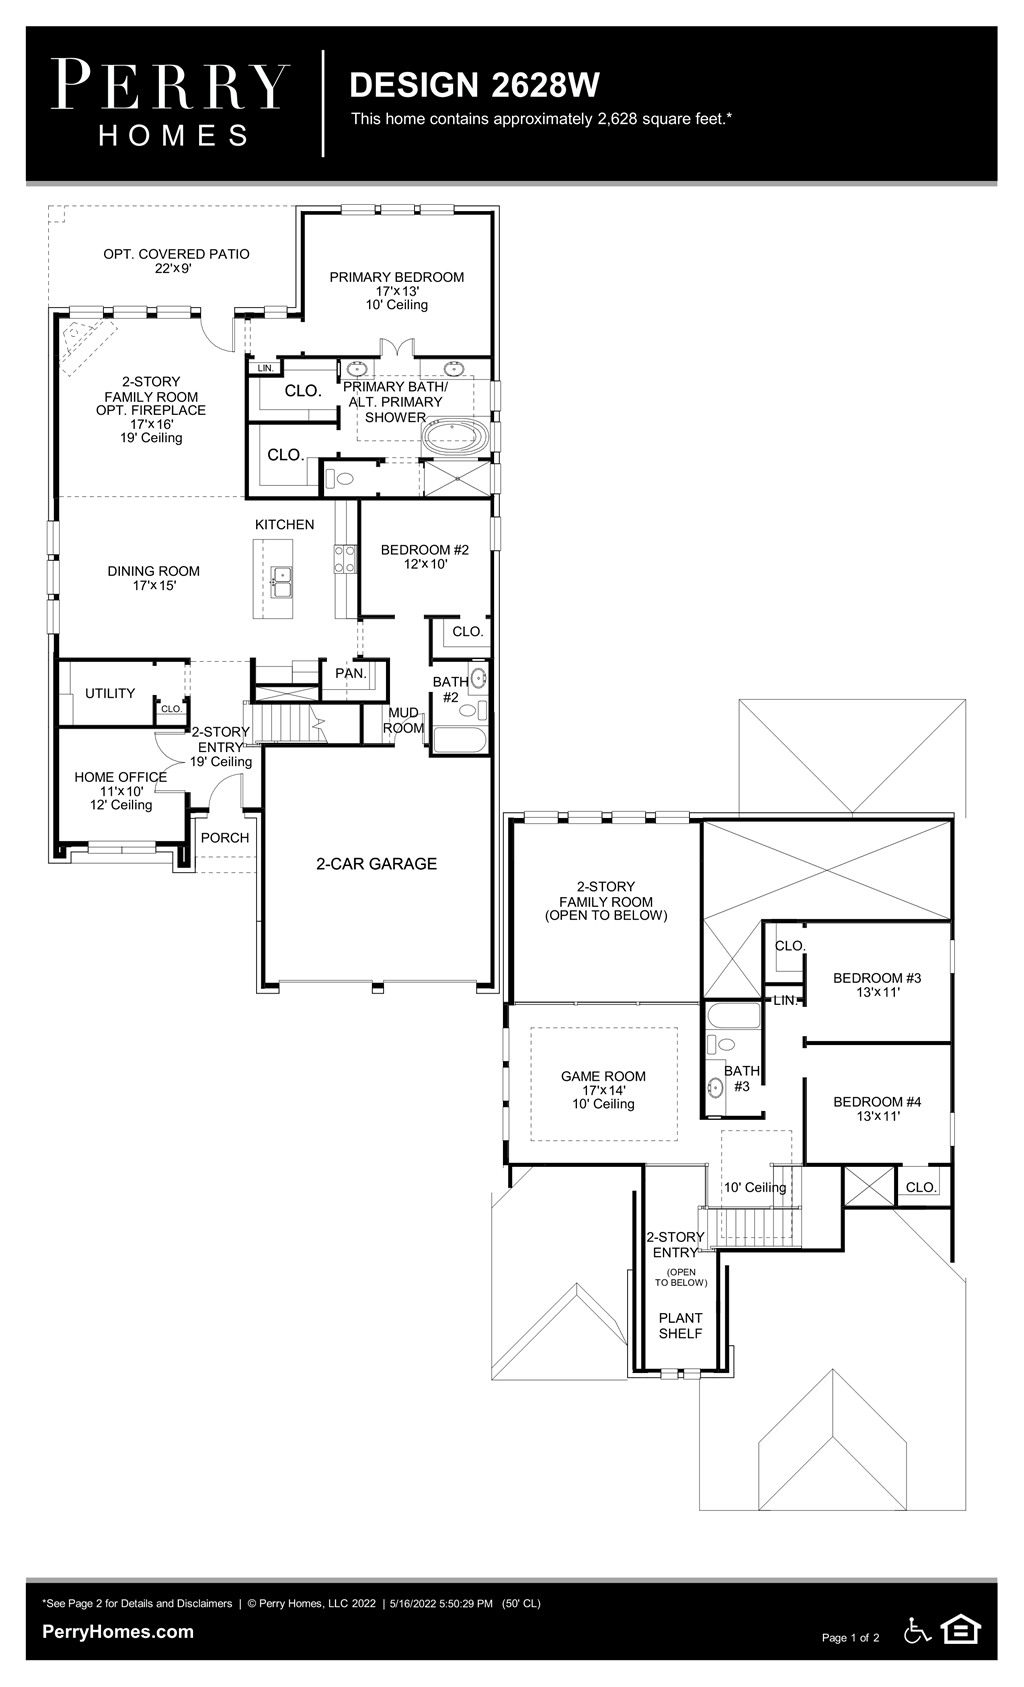 Floor Plan for 2628W